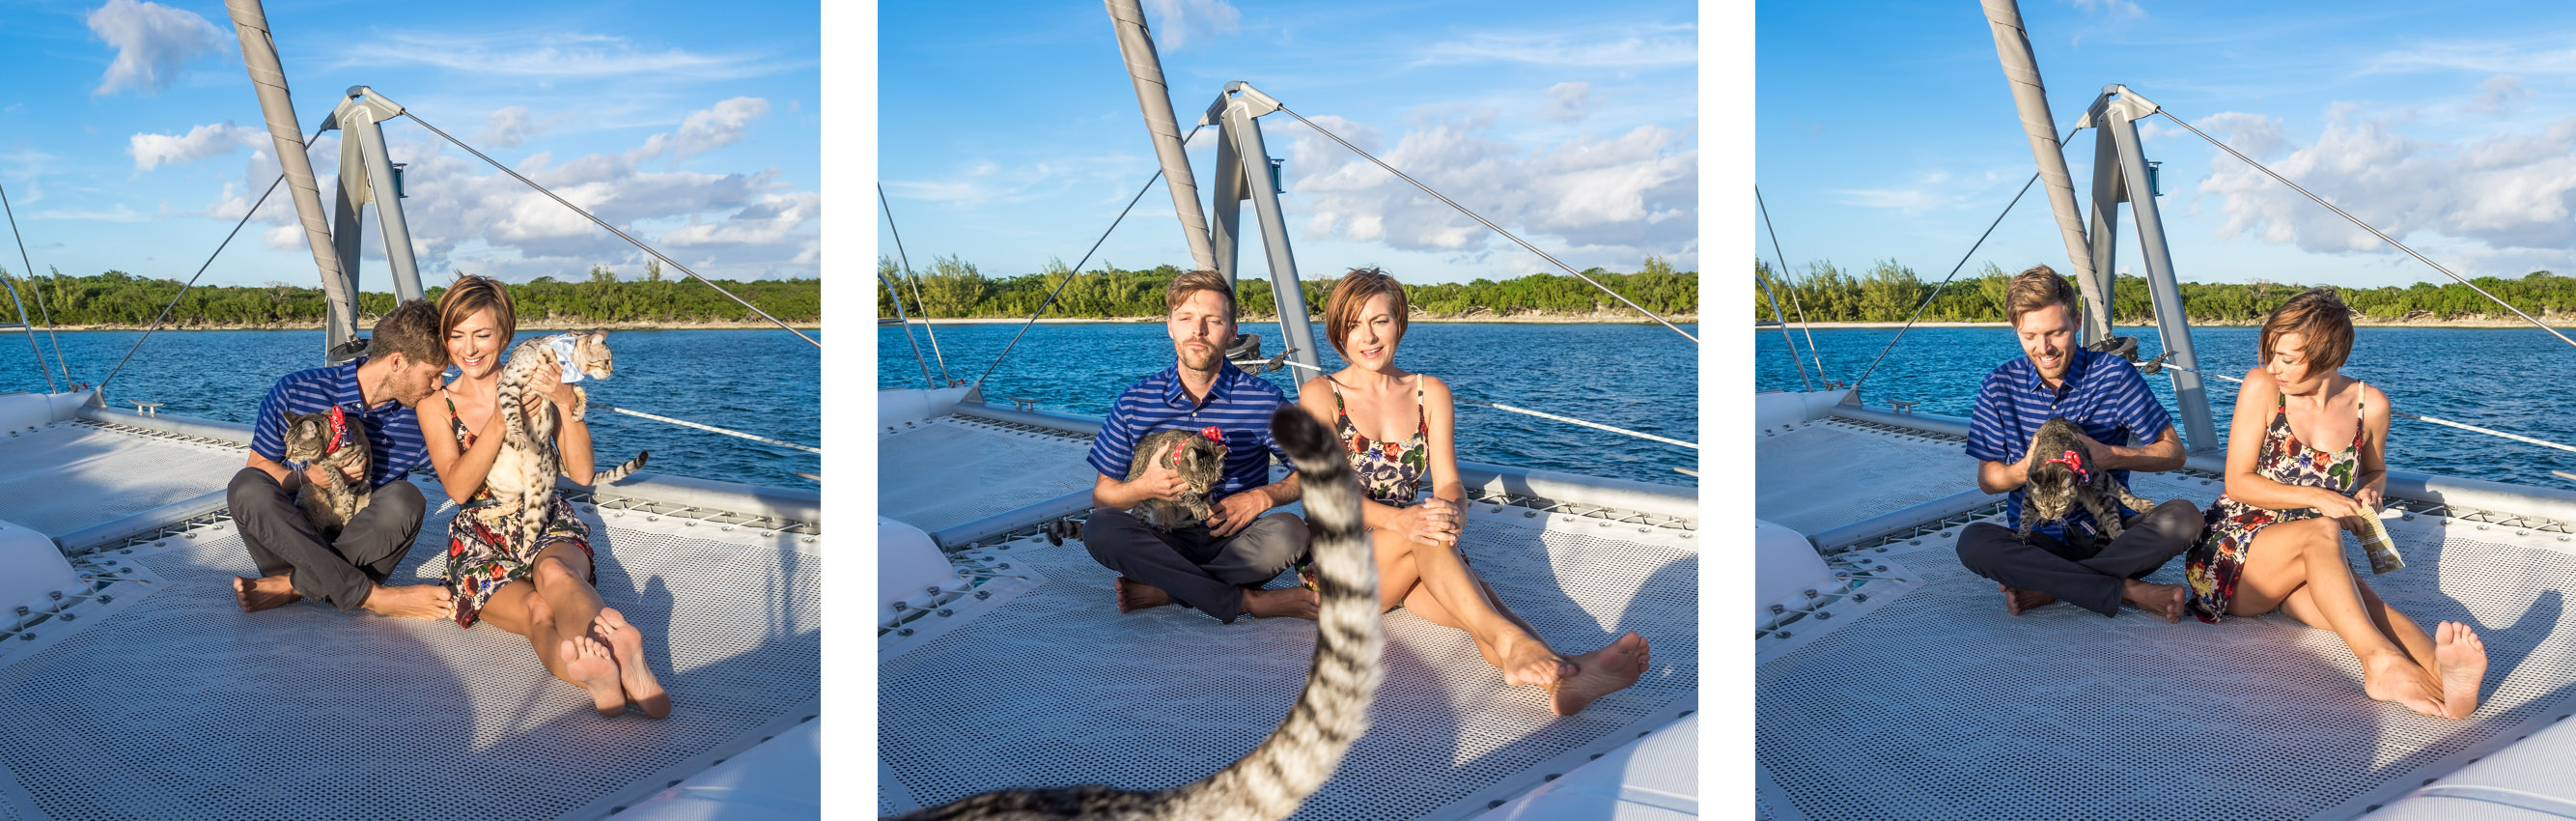 Jason and Nikki Wynn sailing catamaran